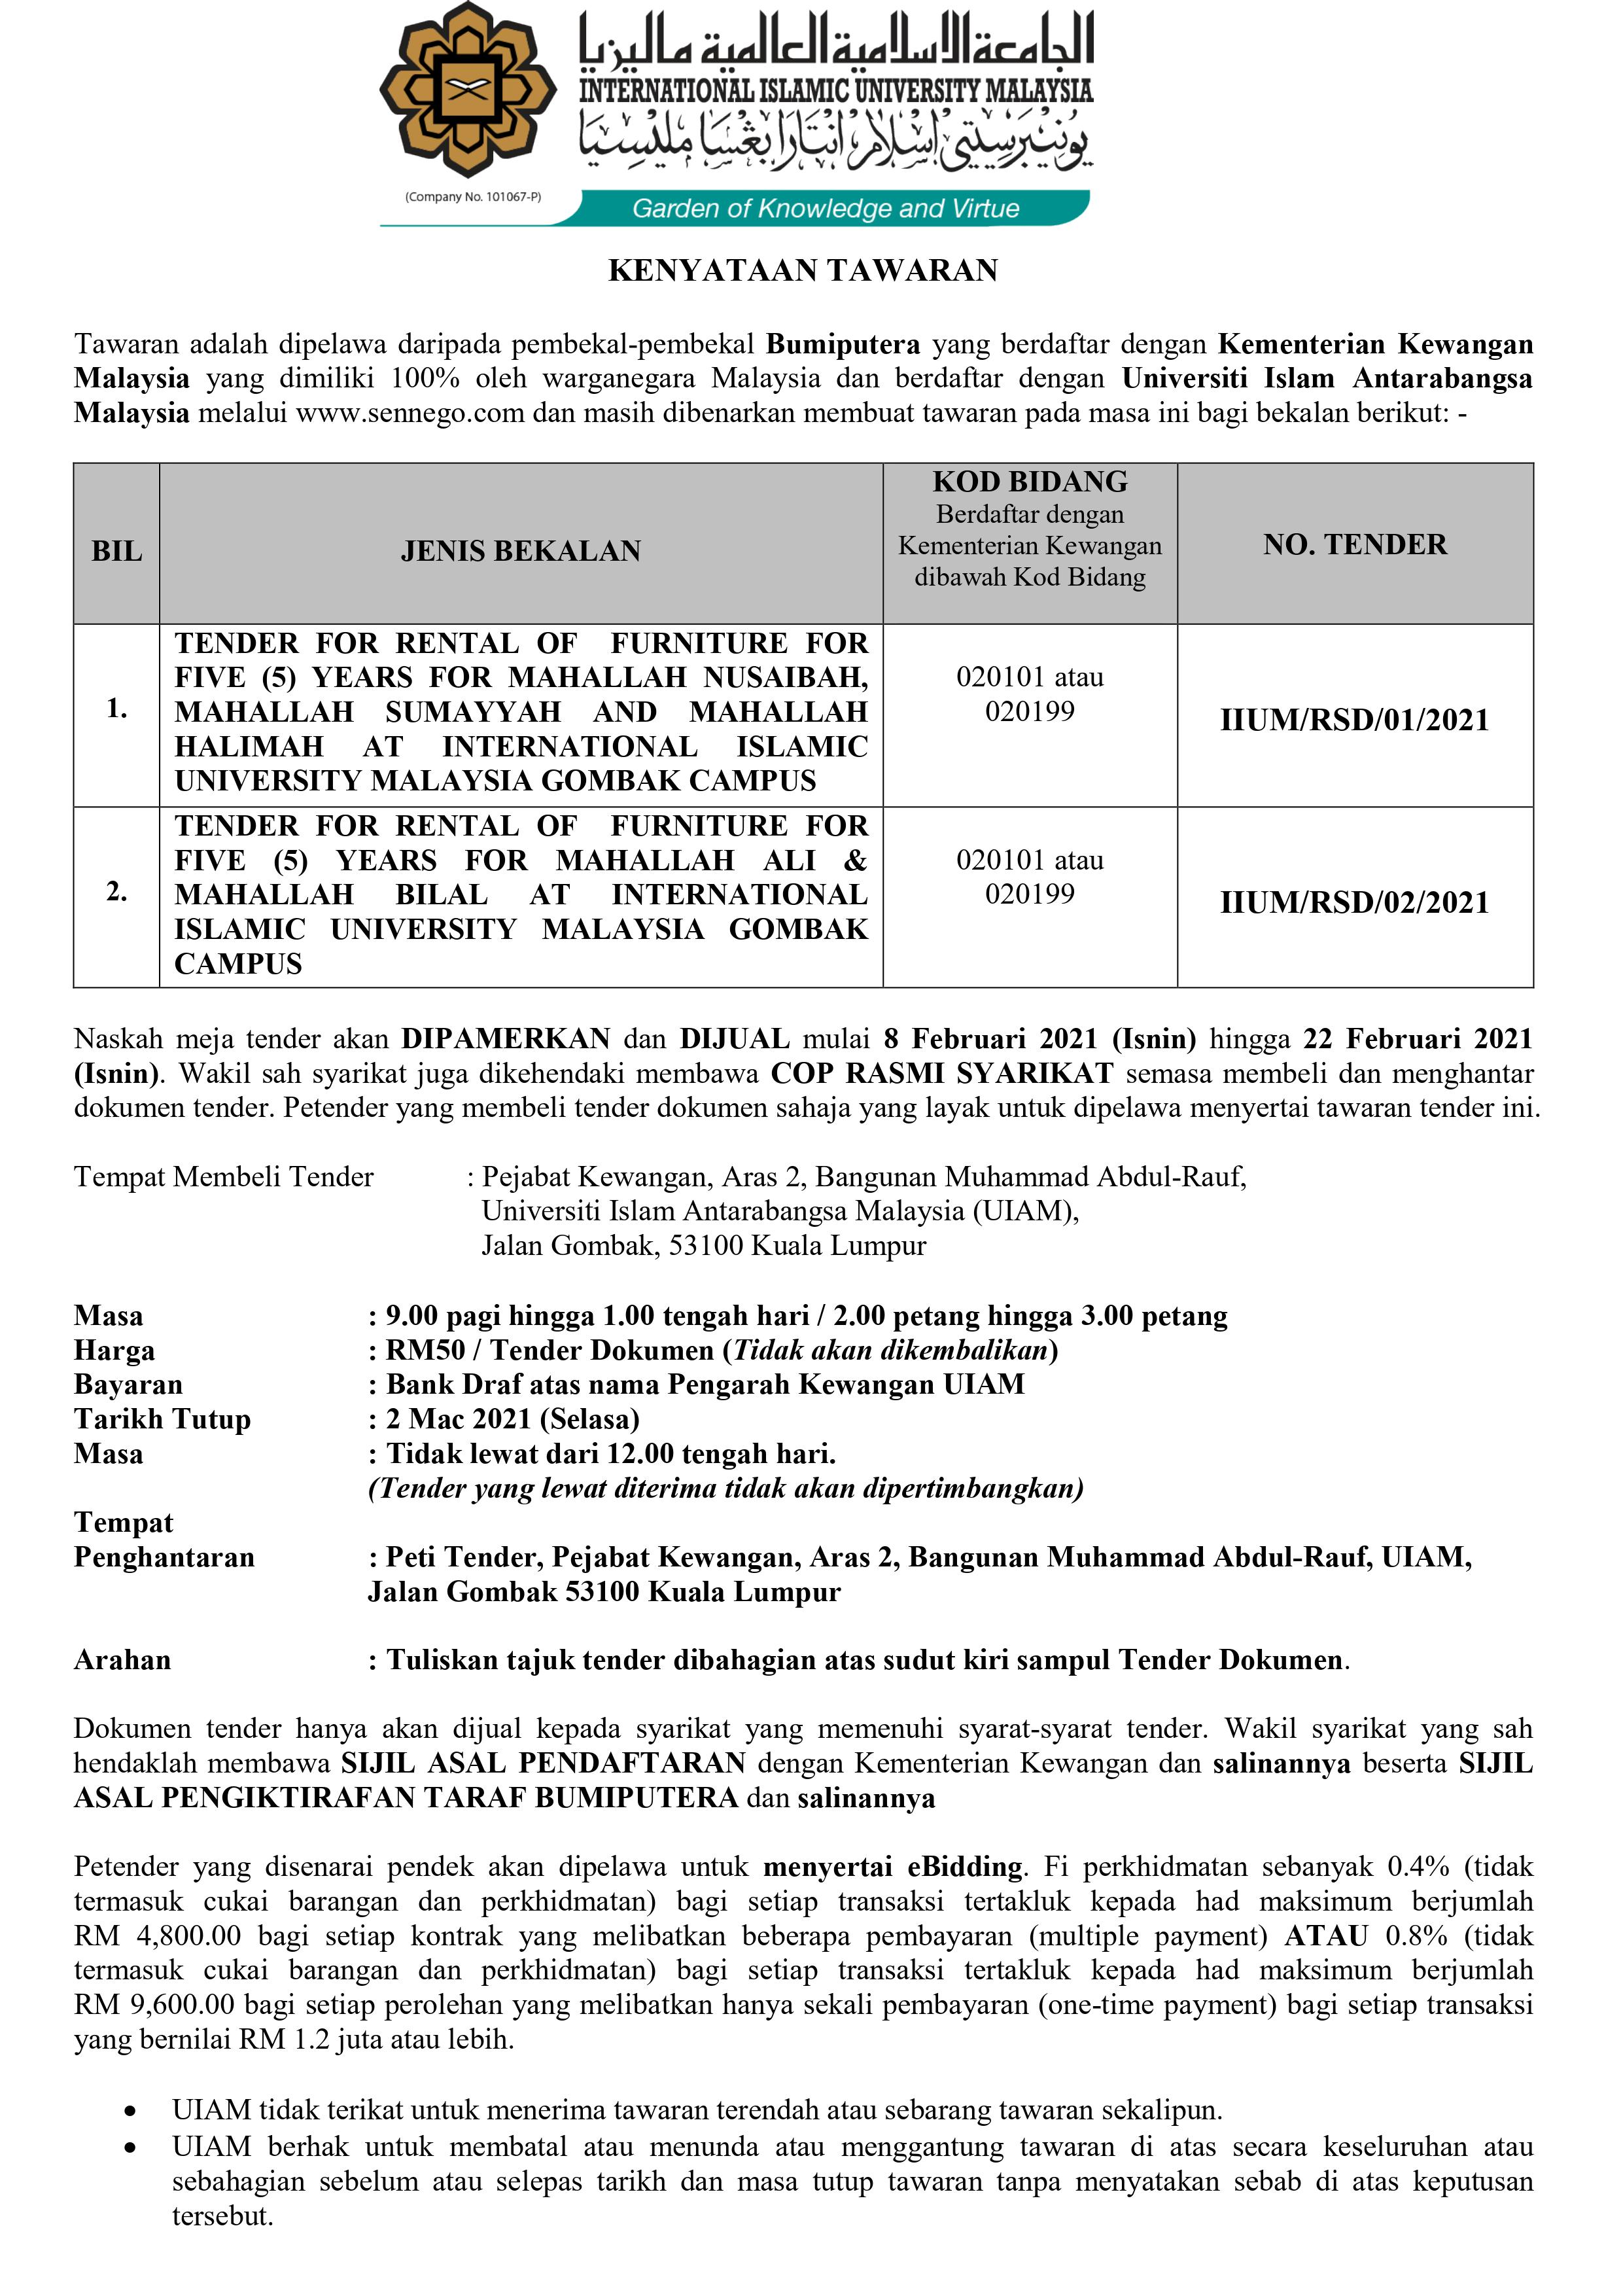 Kindly advertise the above tender starting from today 5/2/2021 until 2/3/2021